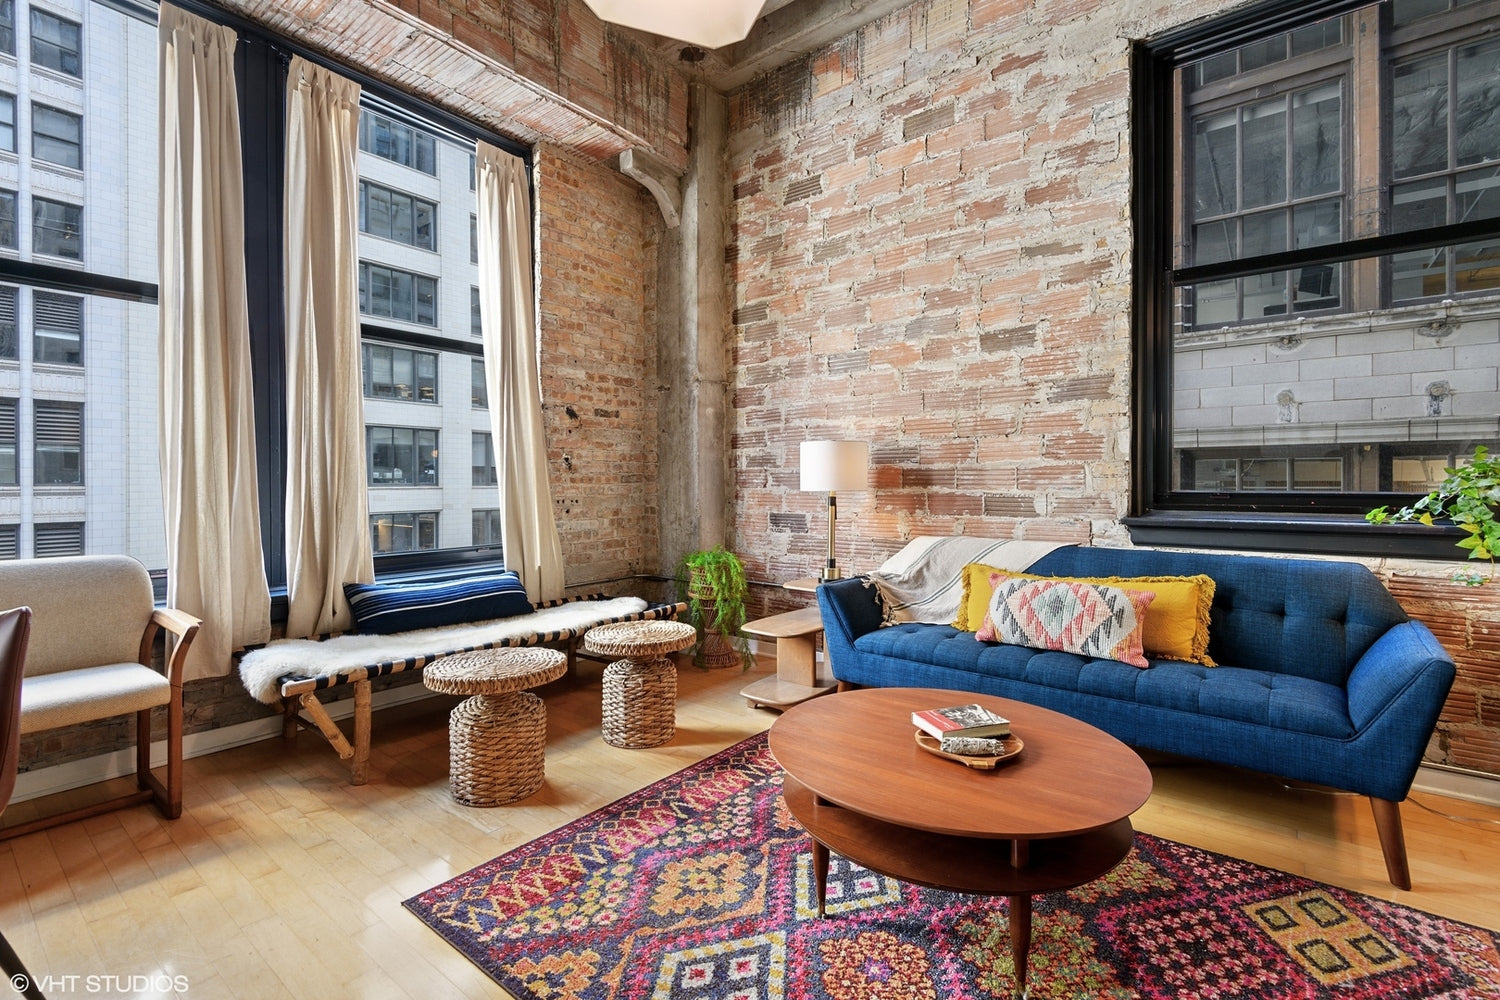 Eskell's real estate staging and home staging tips boost sales for properties in the Chicago real estate market.